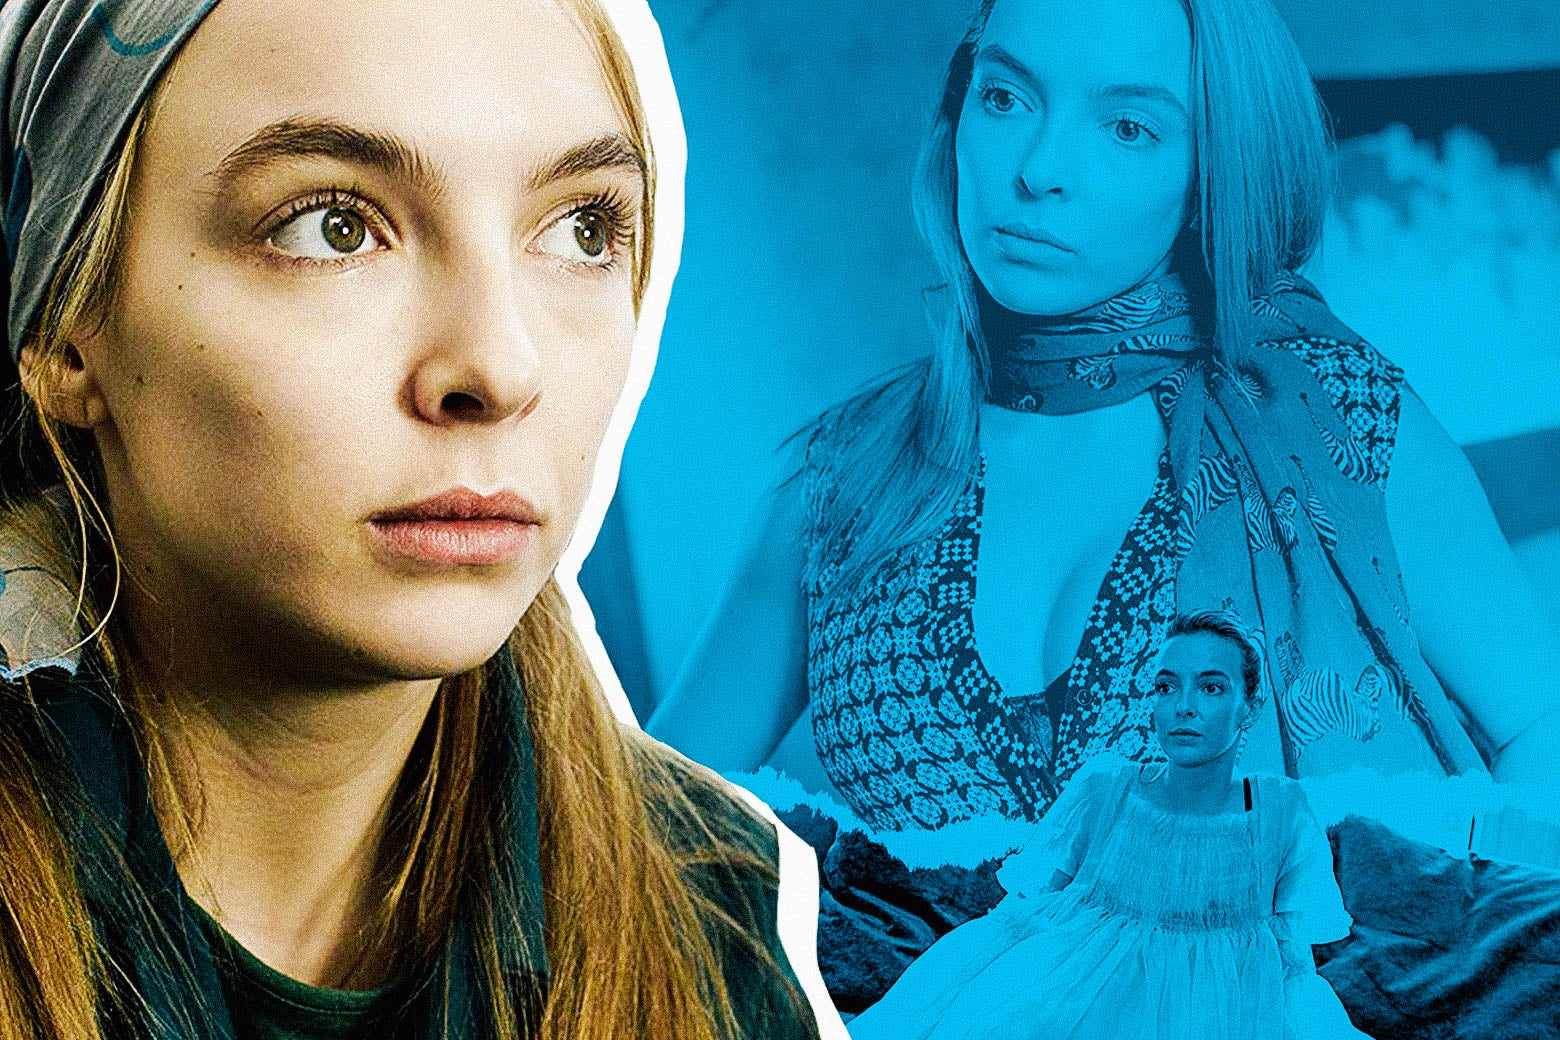 Jodie Comer as Villanelle in various costumes.